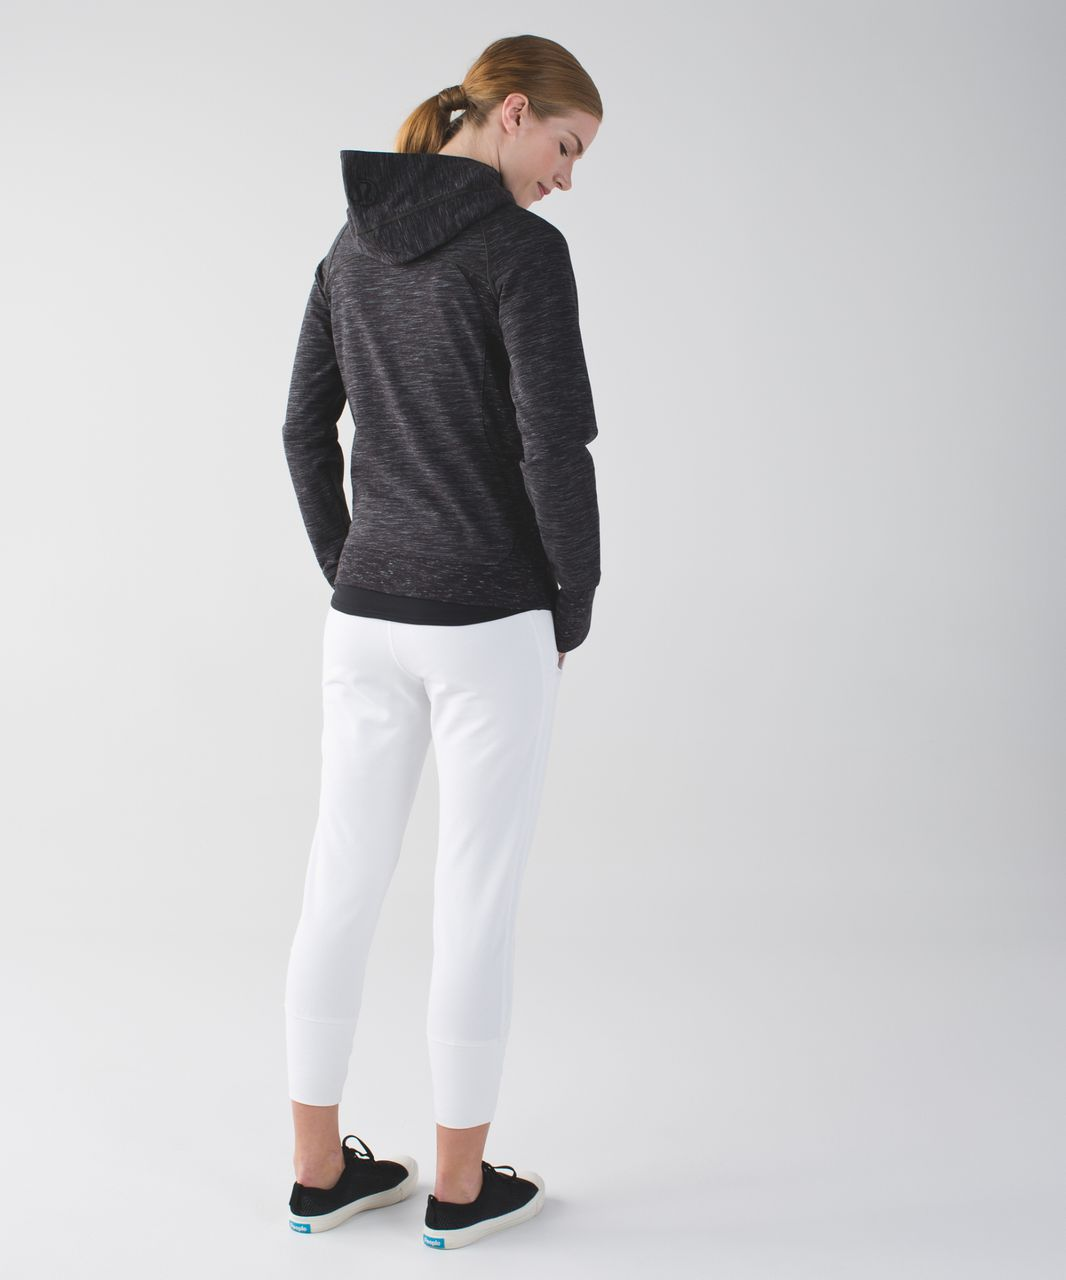 Lululemon Scuba Hoodie III *Terry - Heathered Marled Black